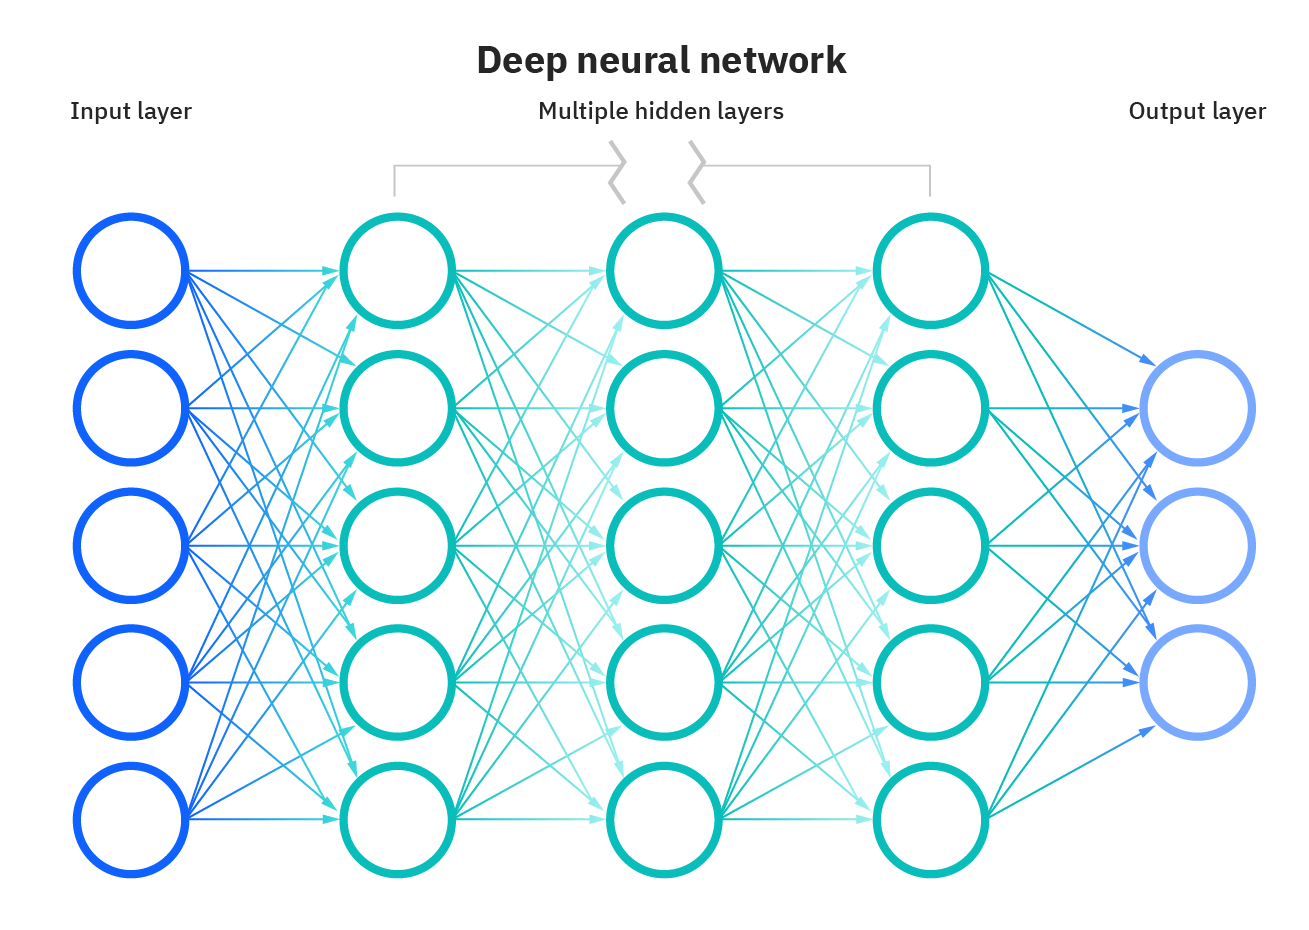 Diagram of Deep Neural Network